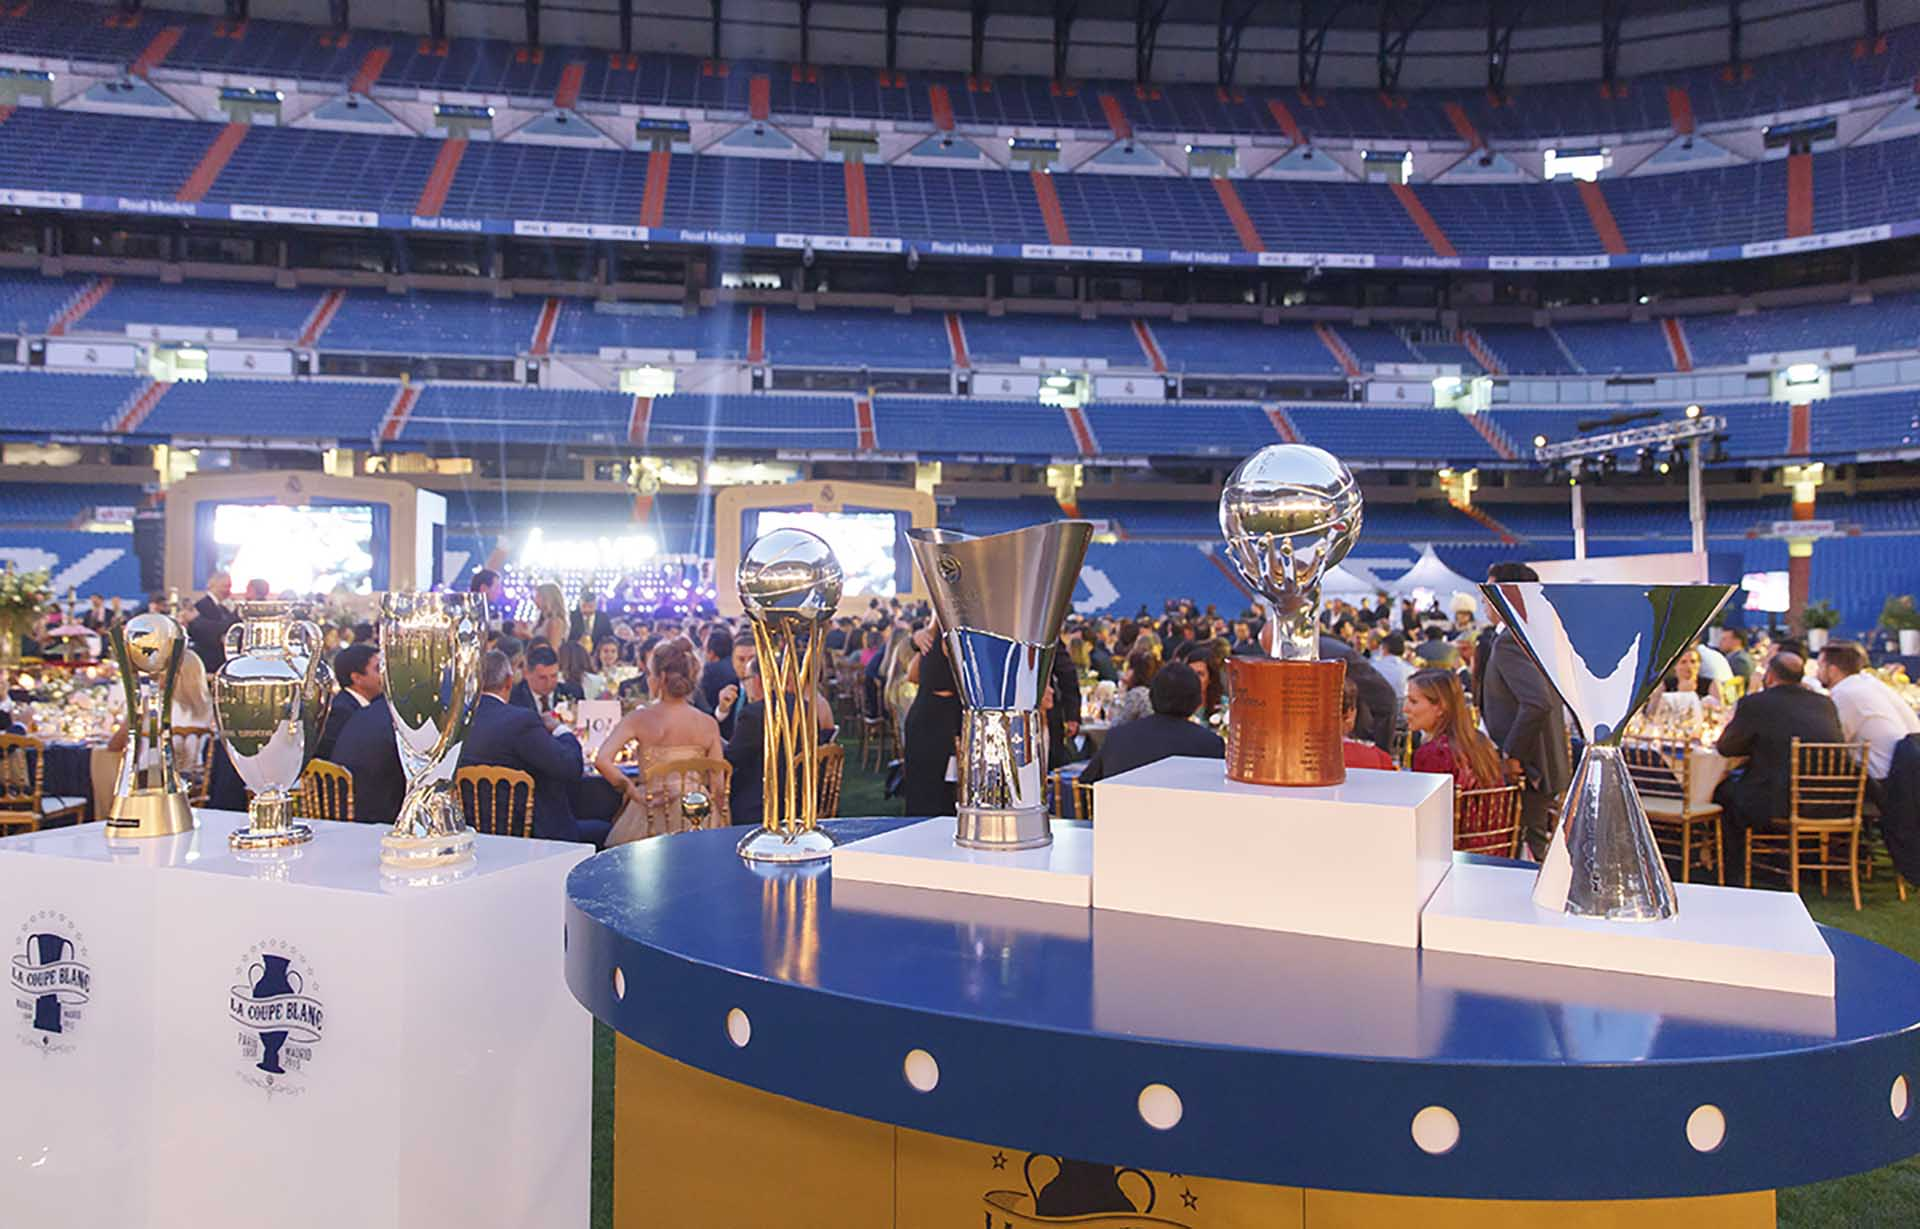 Annual event vip area Real Madrid. Catering area assembly